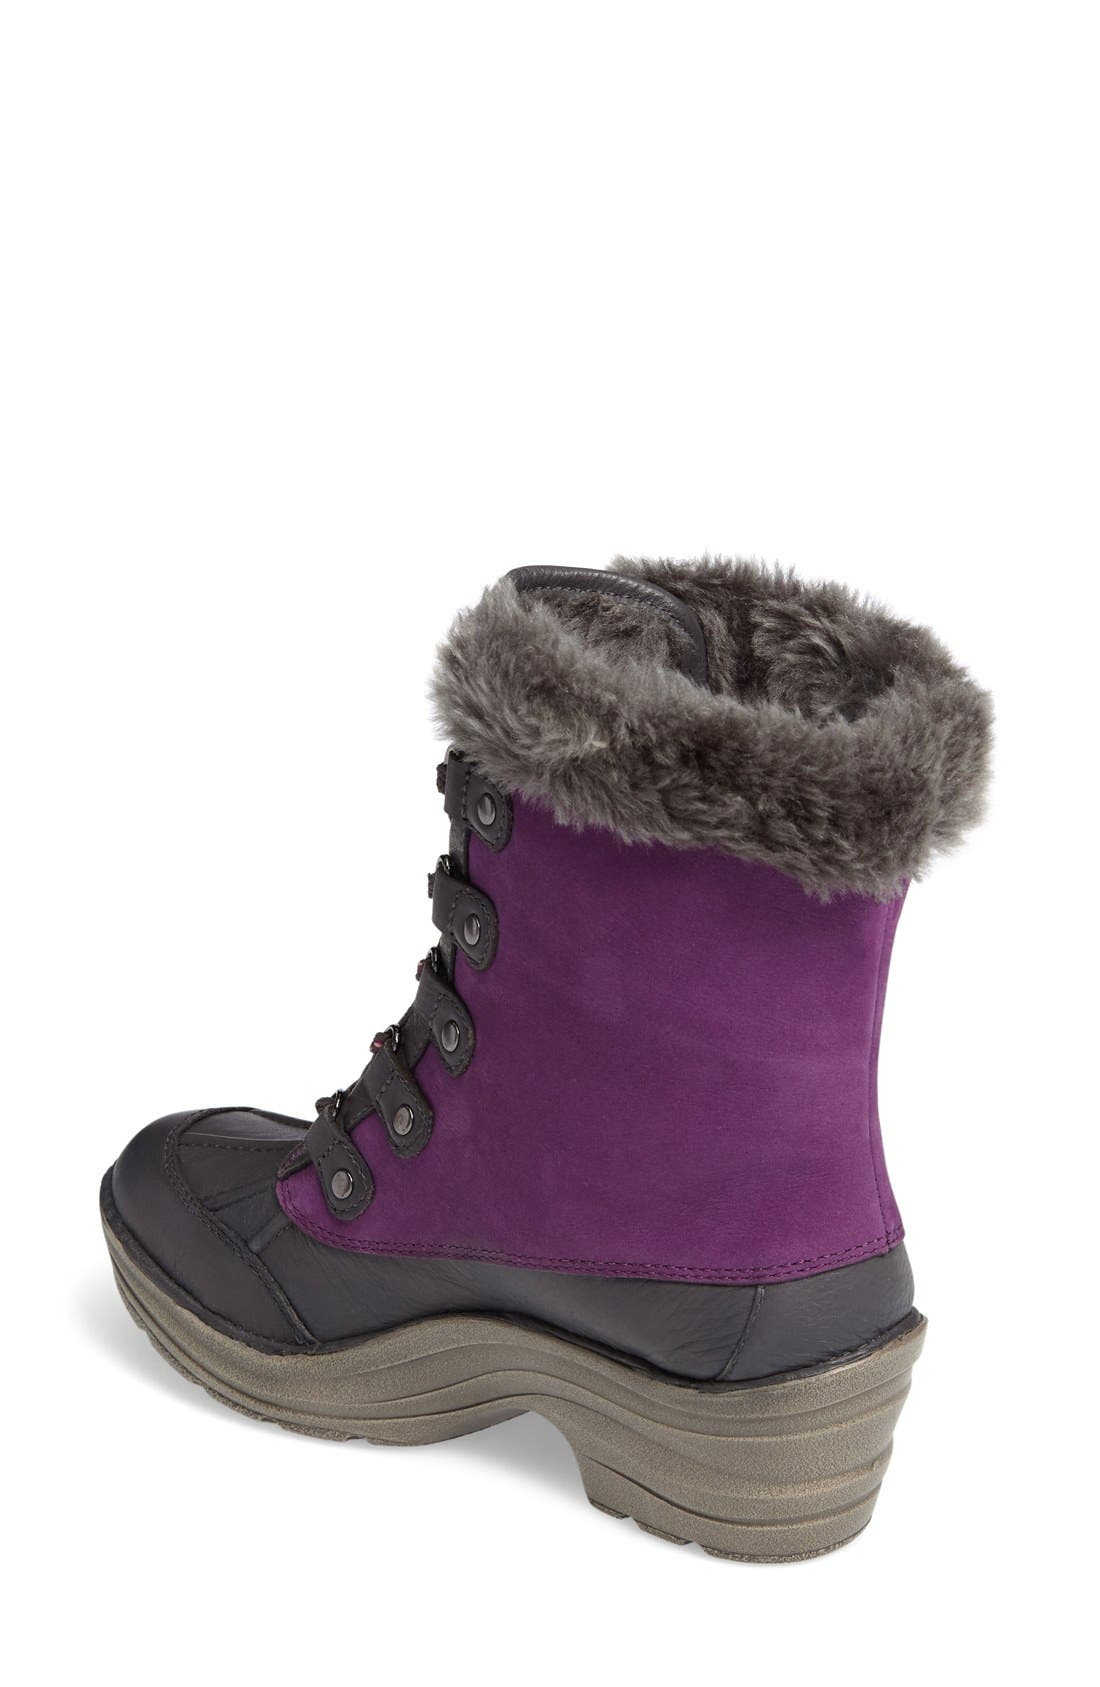 Rosemound Waterproof Boot,                             Alternate thumbnail 2, color,                             Purple/ Pewter Leather